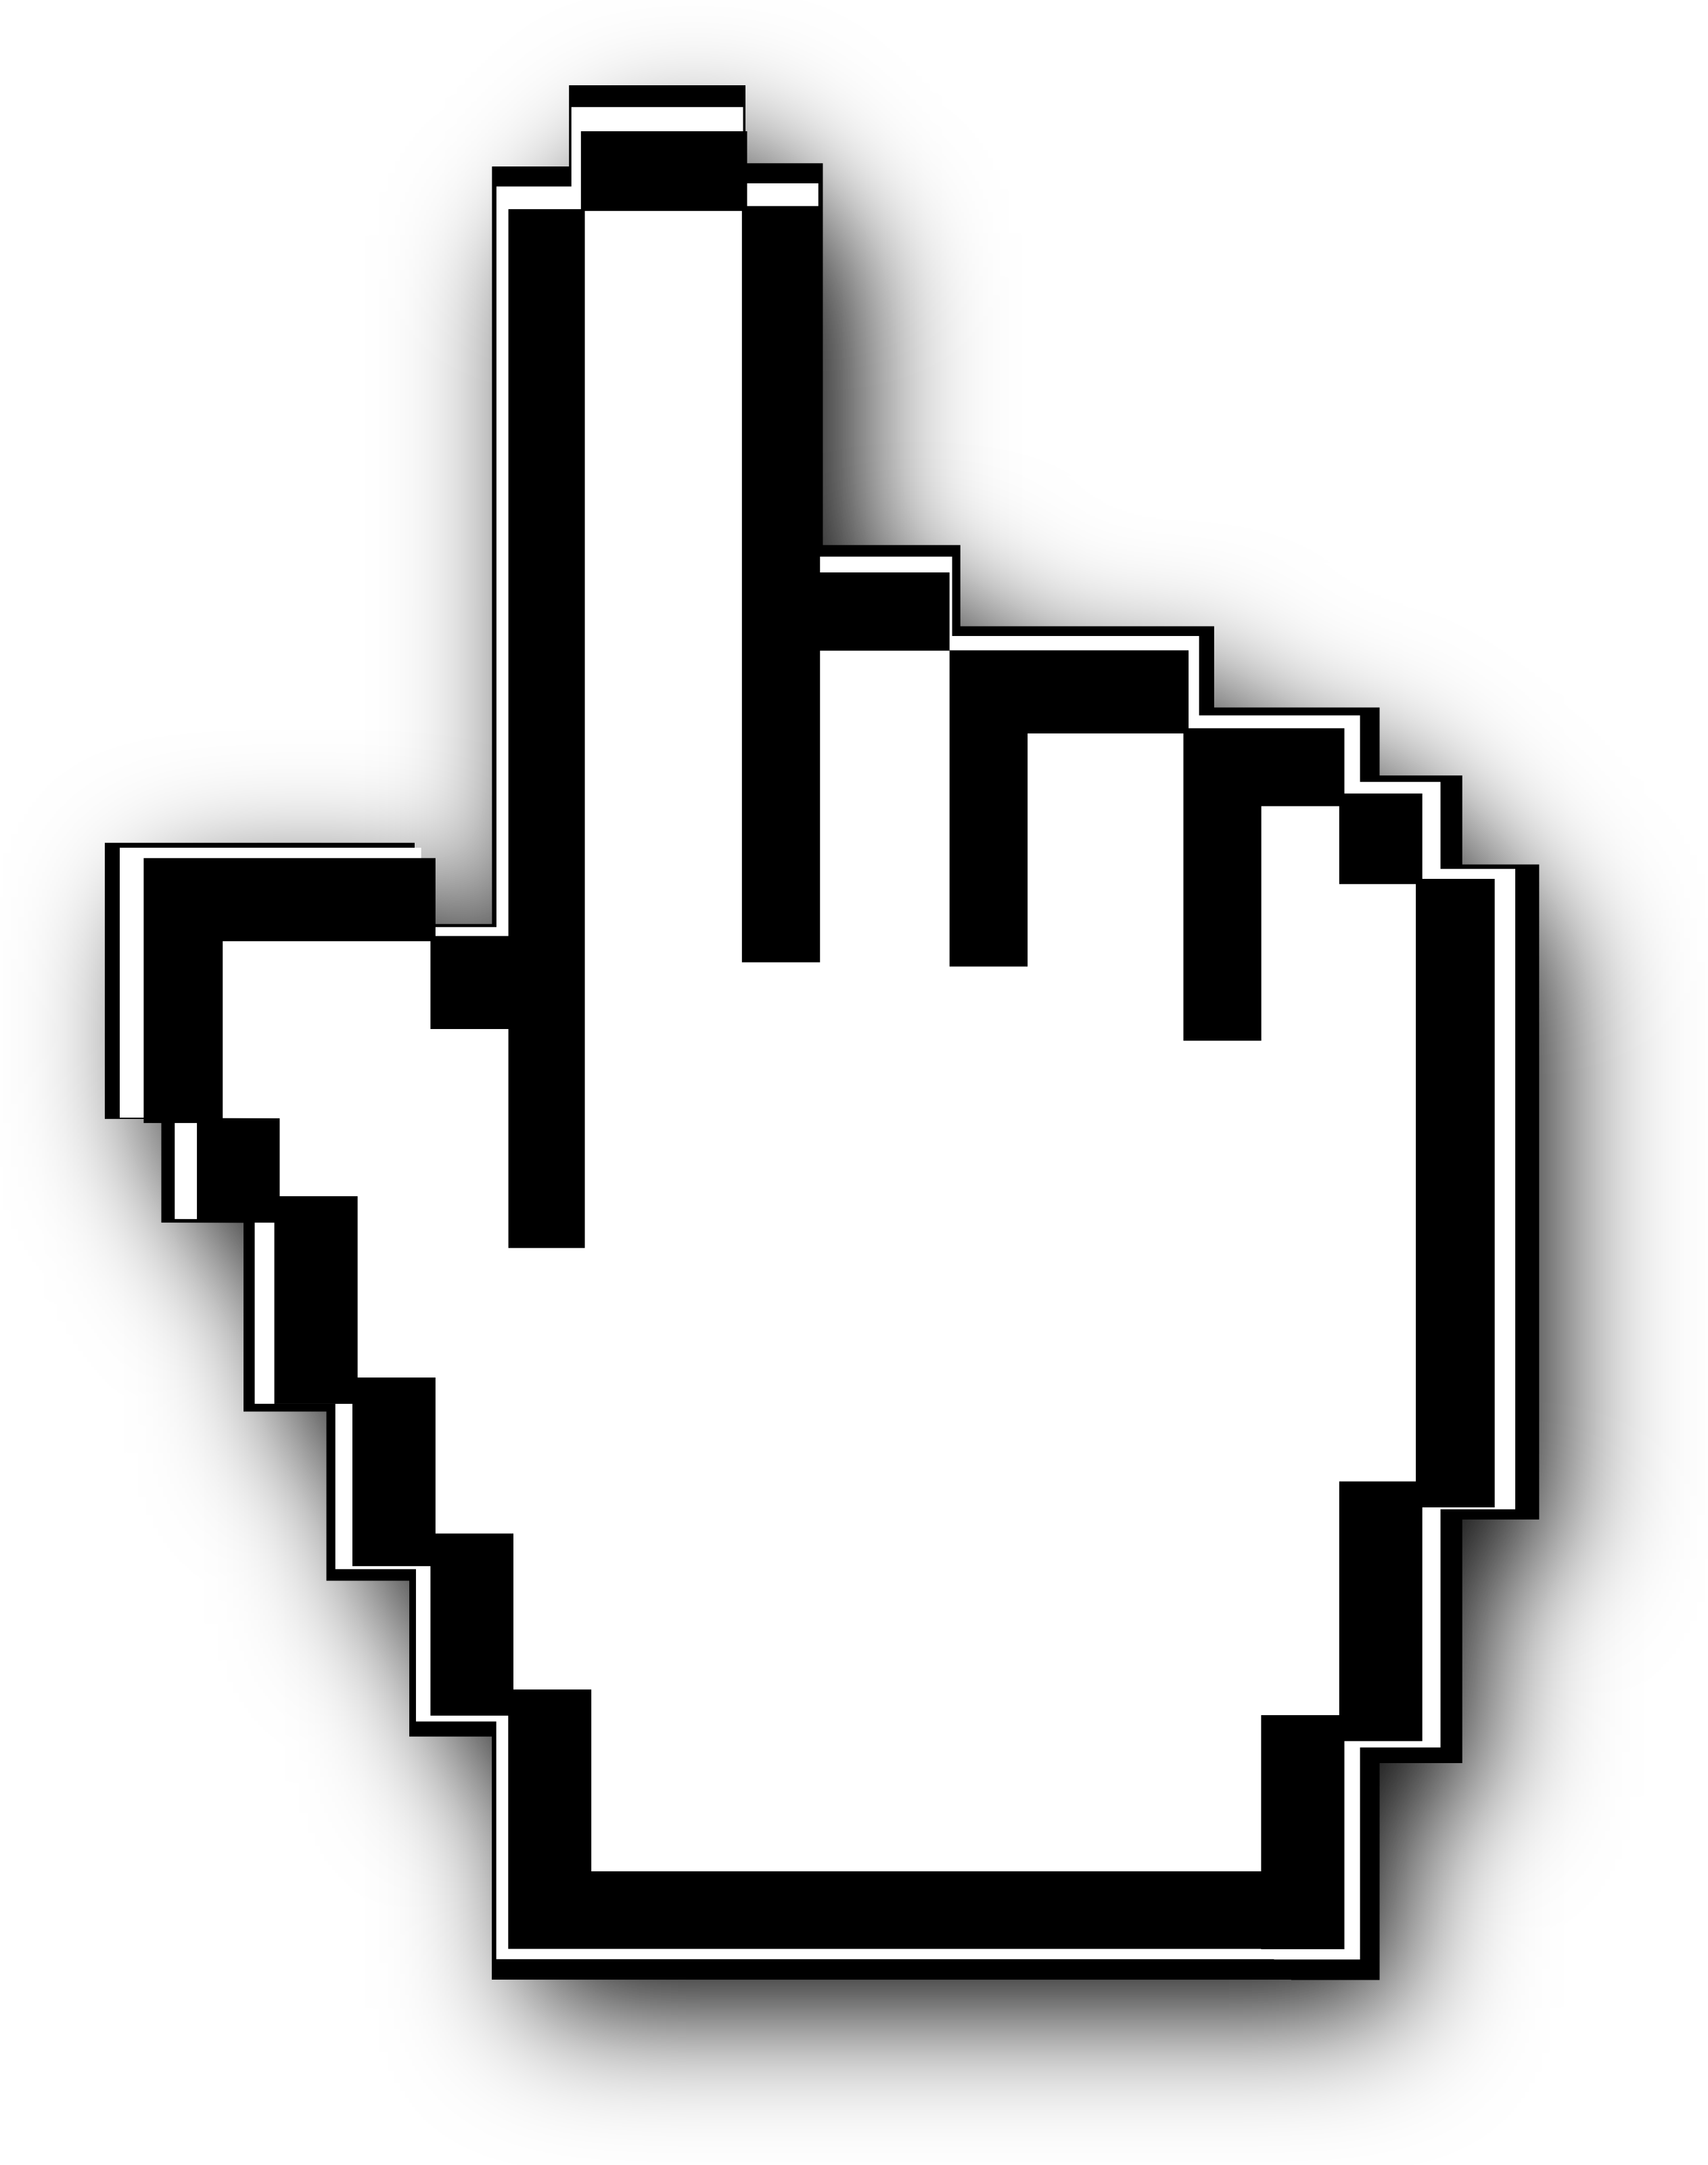 Clipart Image Of A Black And White Cursor Hand With Pointer Finger 2525x3200, Cursor HD PNG Download